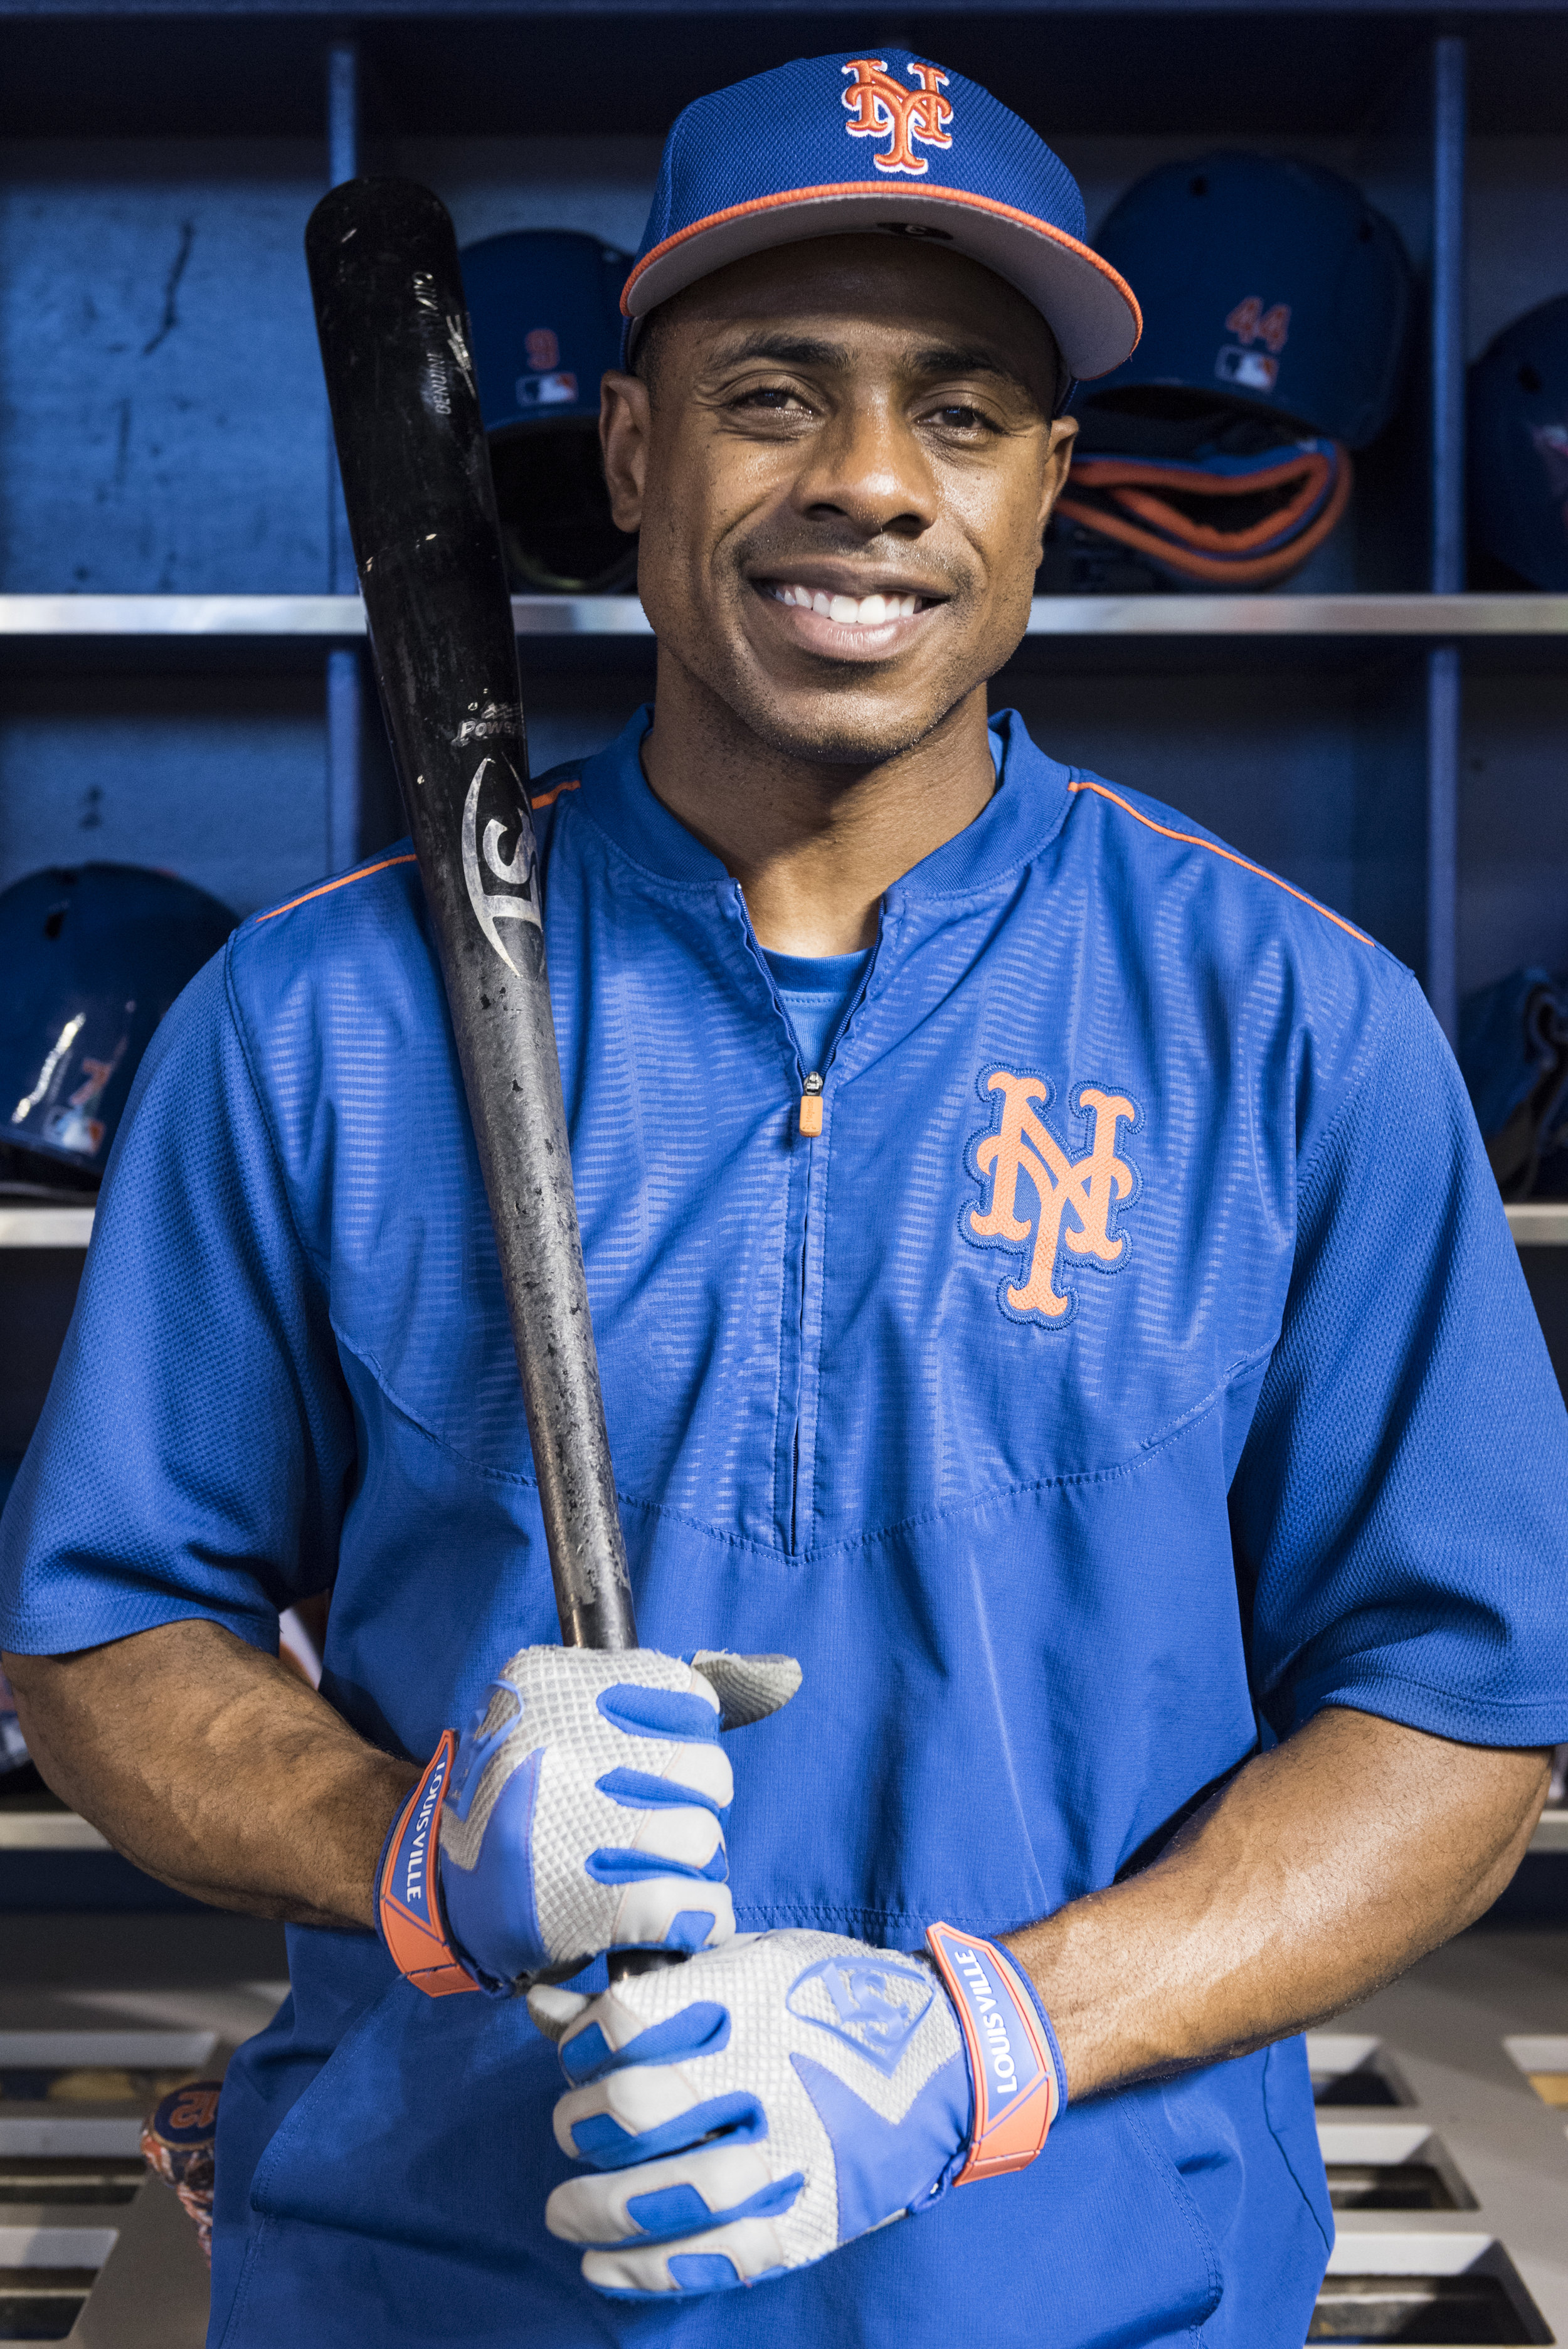 Curtis Granderson, New York Mets